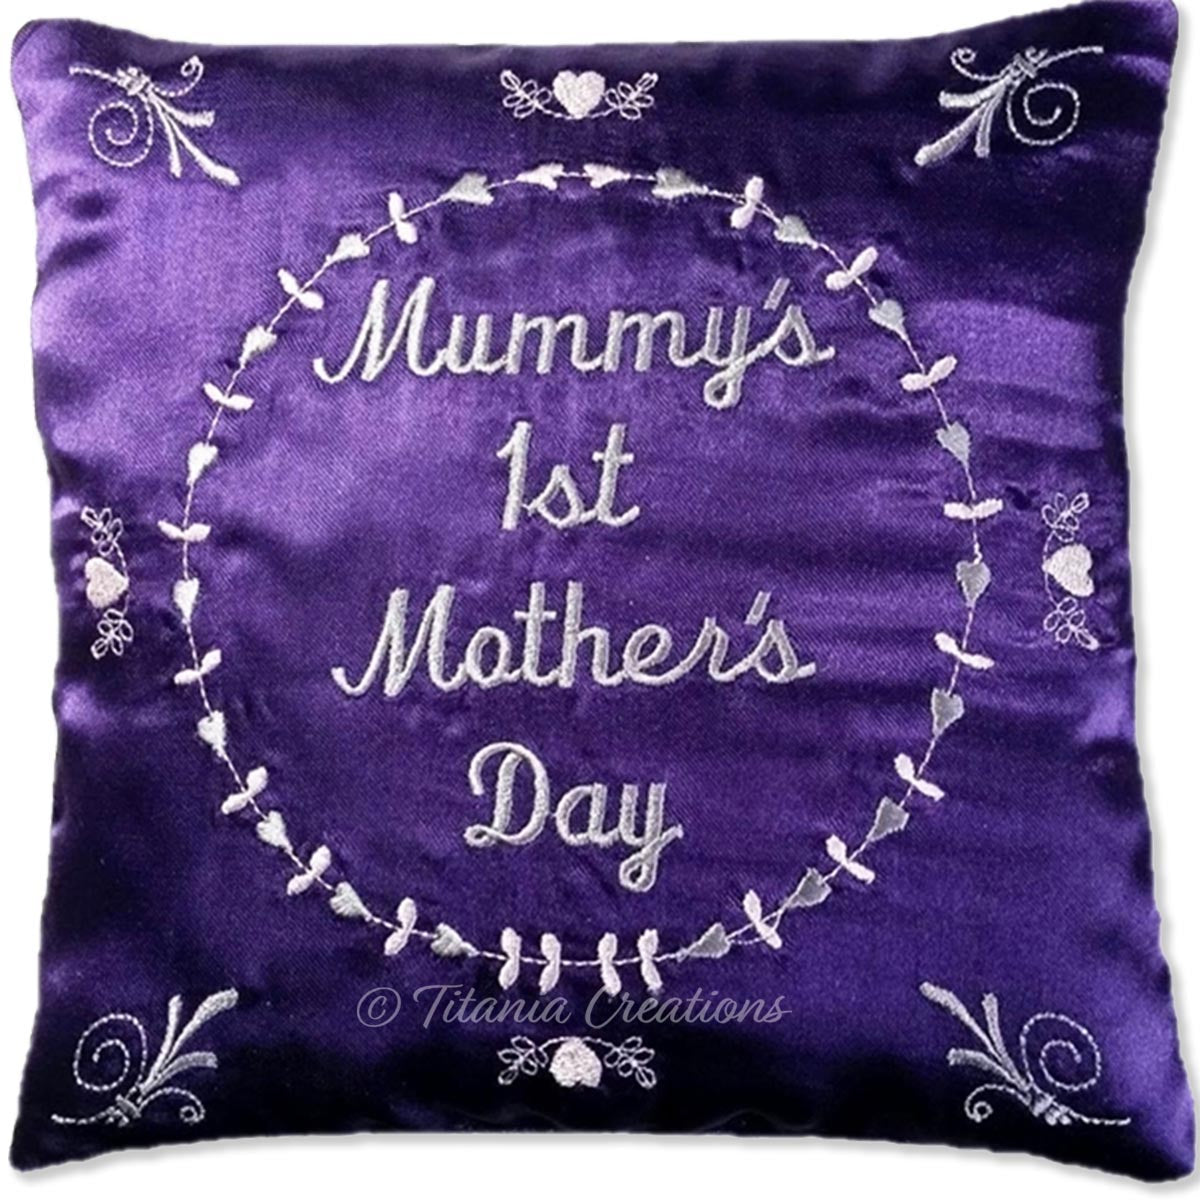 ITH 1st Mothers Day Pillow 5x5 6x6 8x8